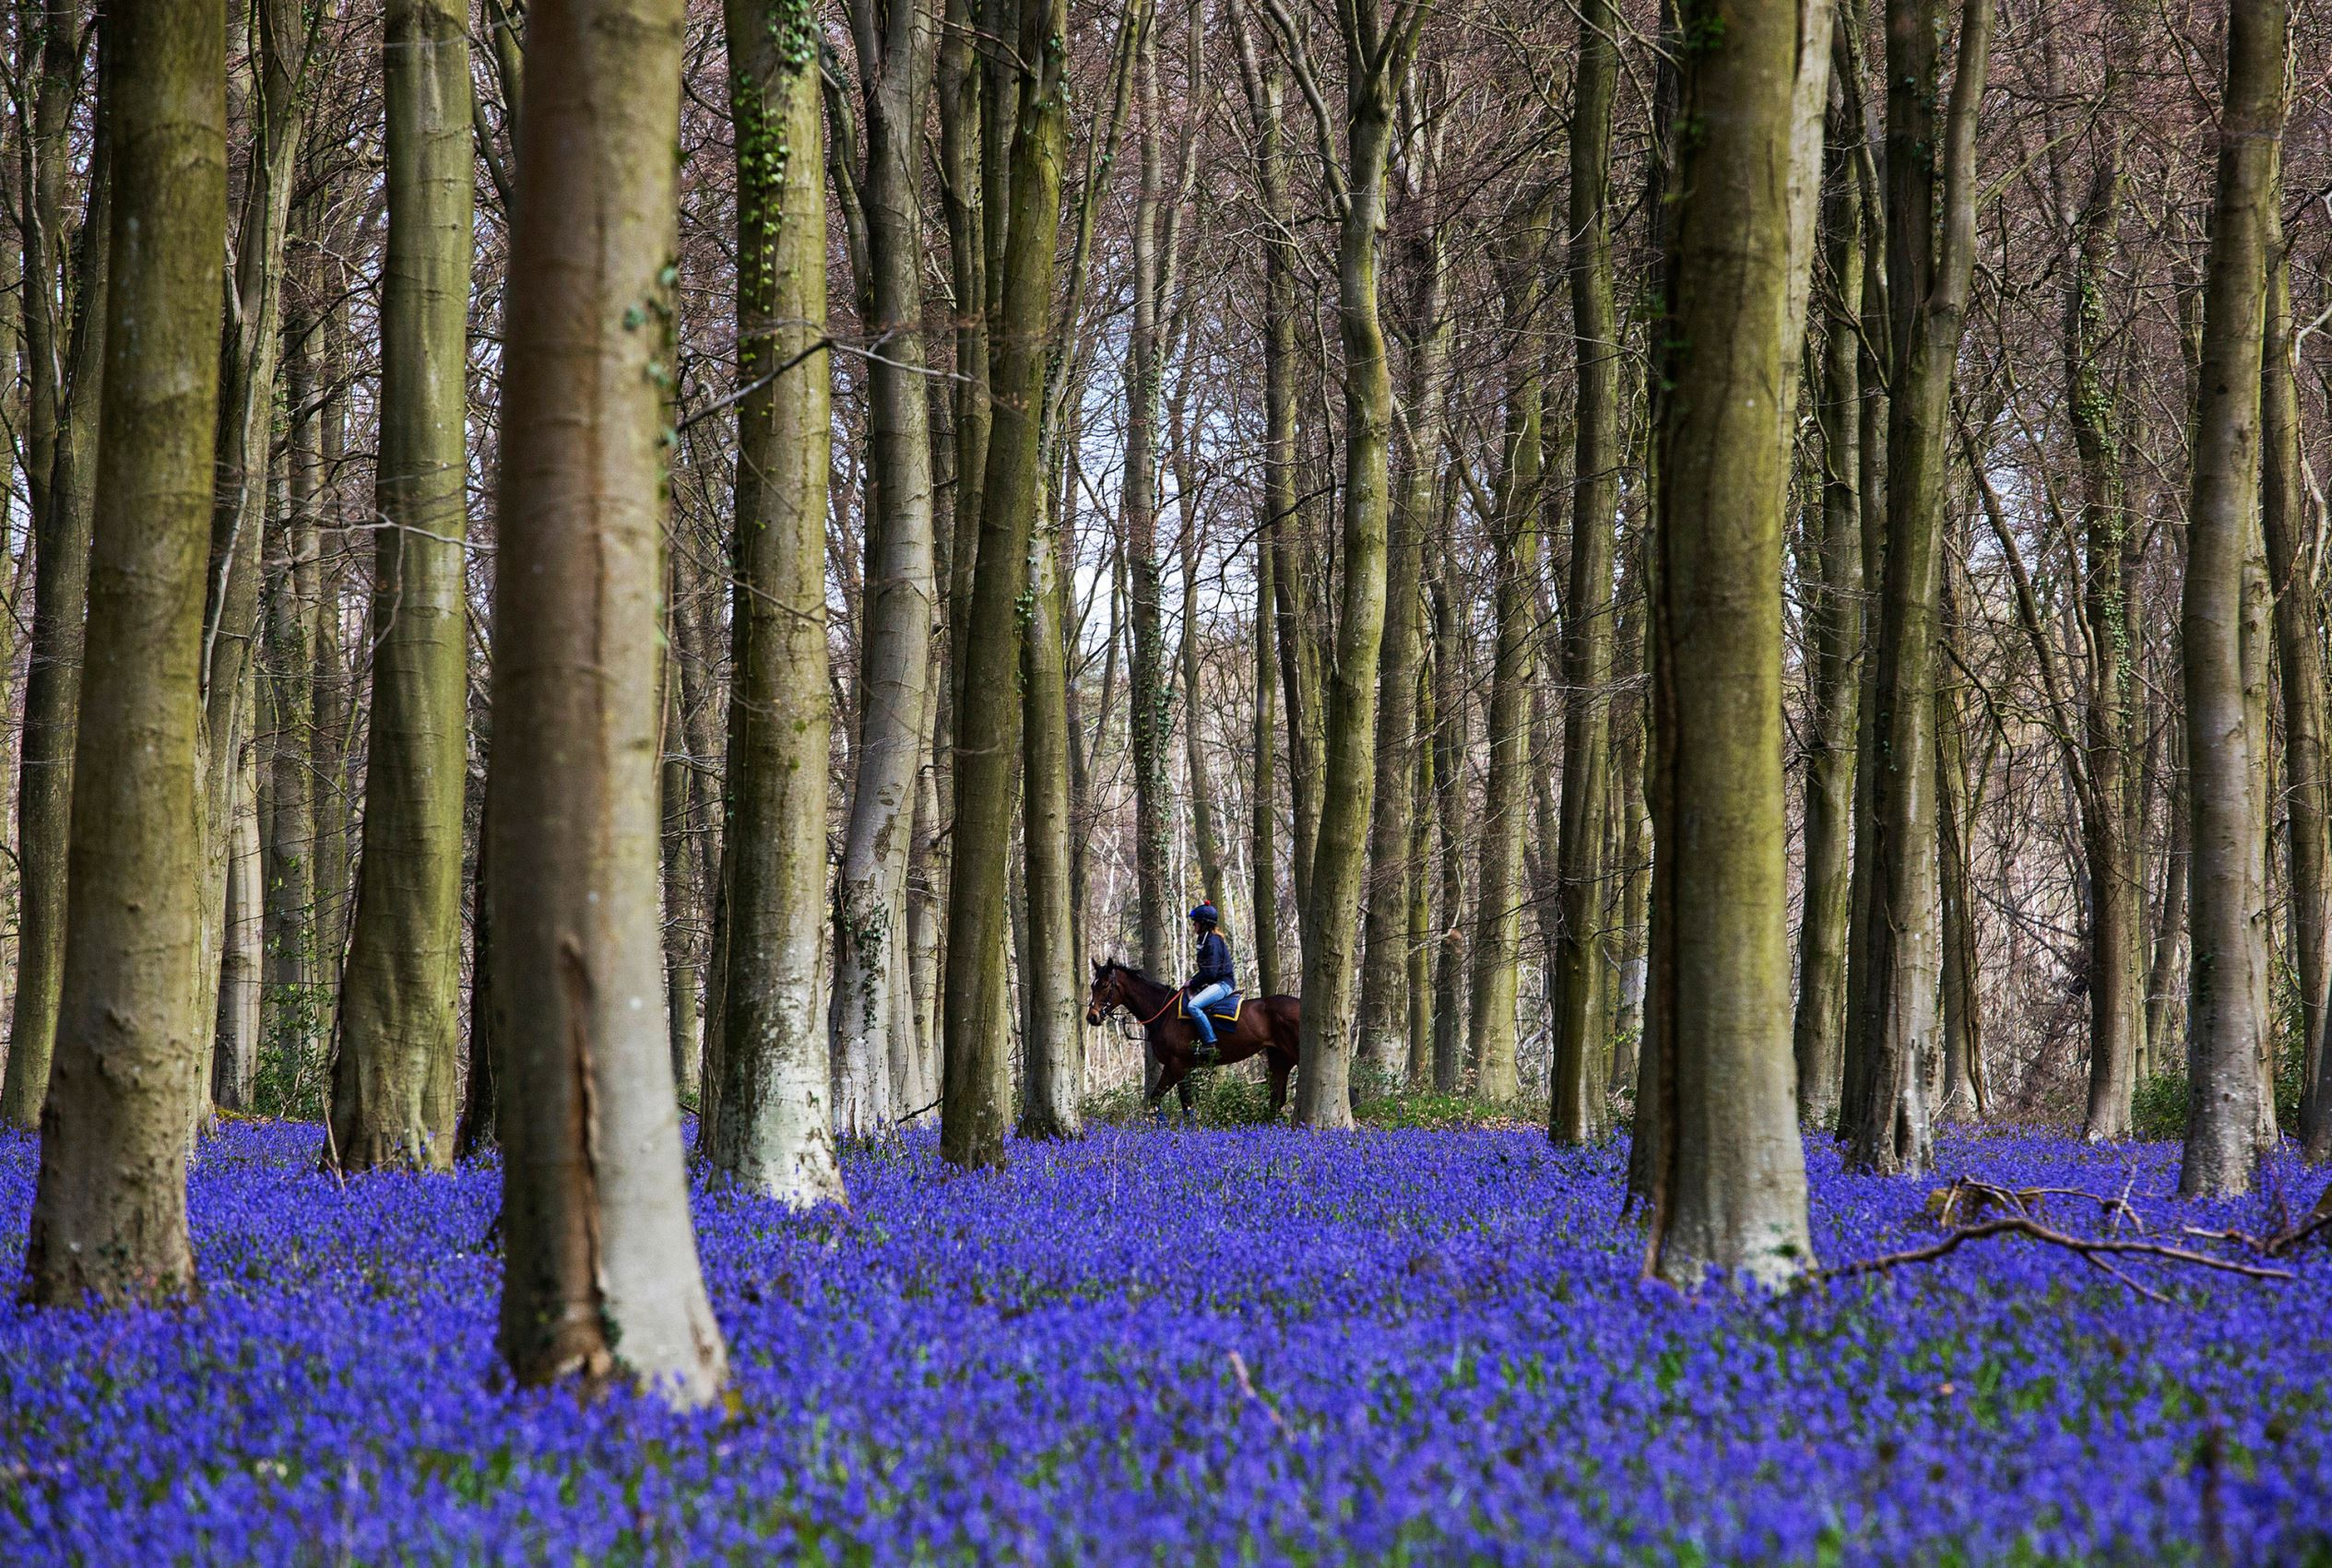 Слайд 39 из 86: LITTLEHAMPTON, ENGLAND - APRIL 19: A racehorse makes its way past a bluebell covered woodland on its way to the gallops at William Knight's Lower Coombe racing stables in Angmering Park on April 19, 2016 in Angmering, England. (Photo by Alan Crowhurst)